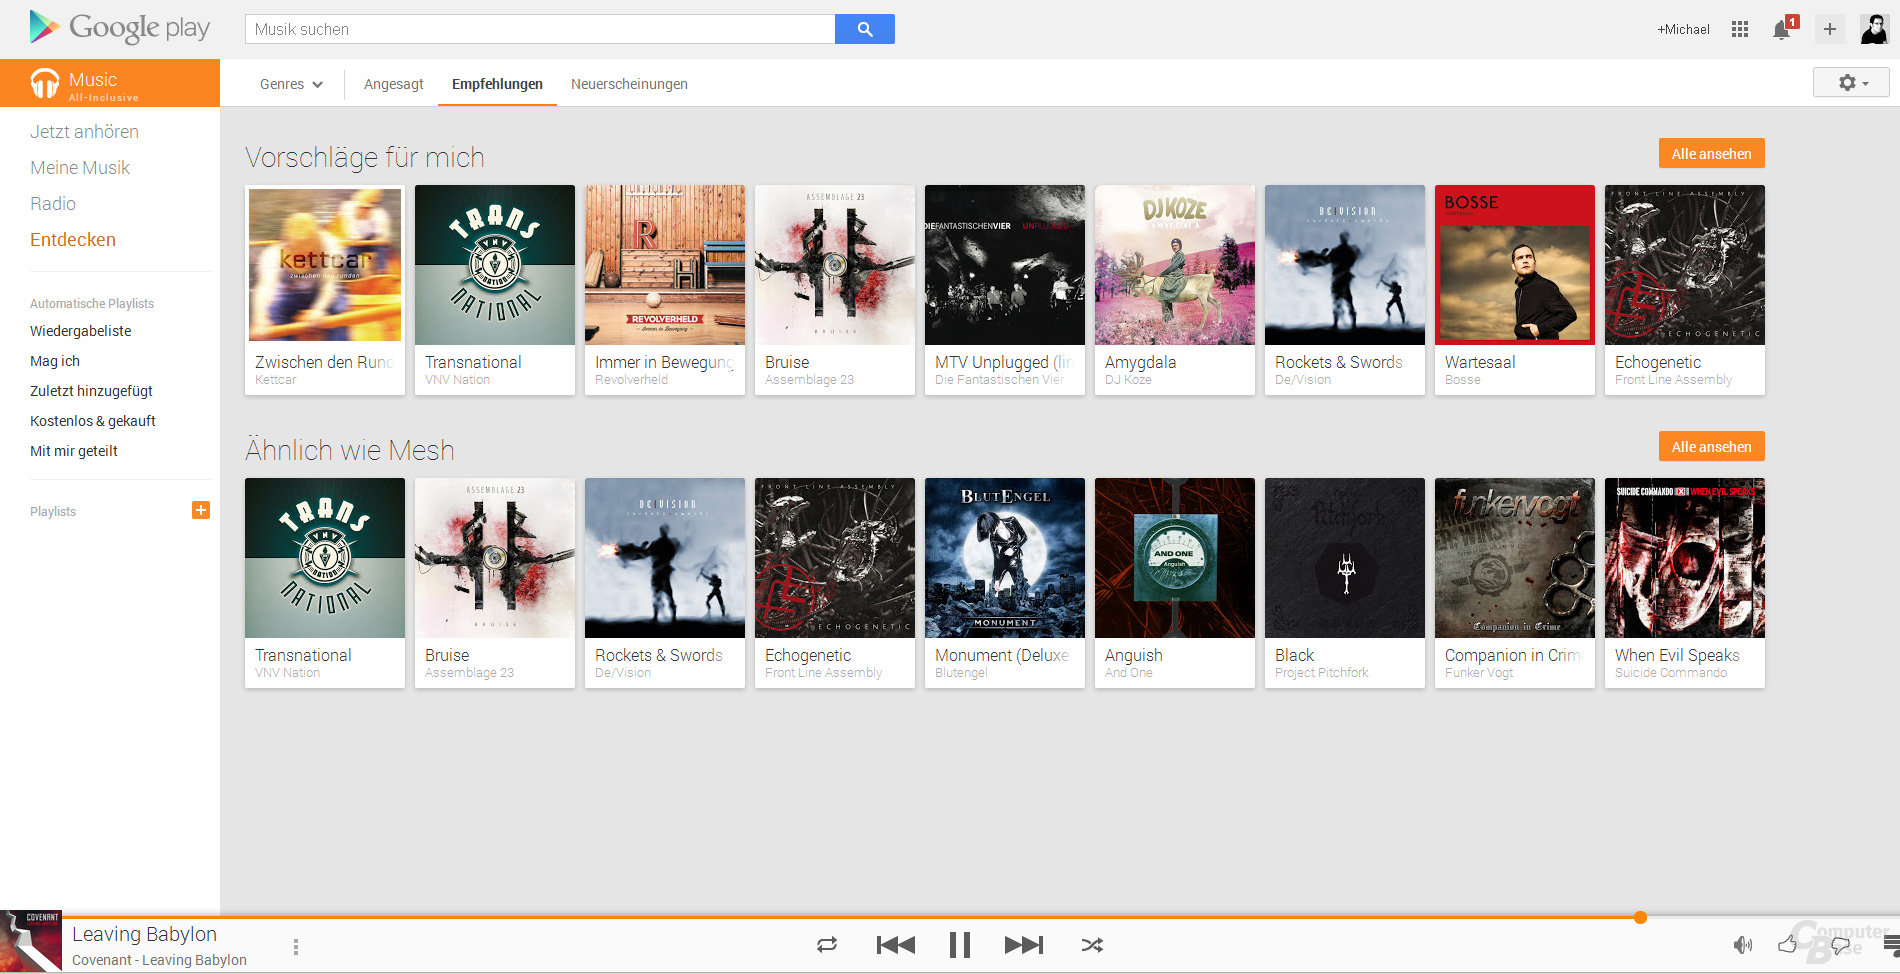 Google Music All-Inclusive